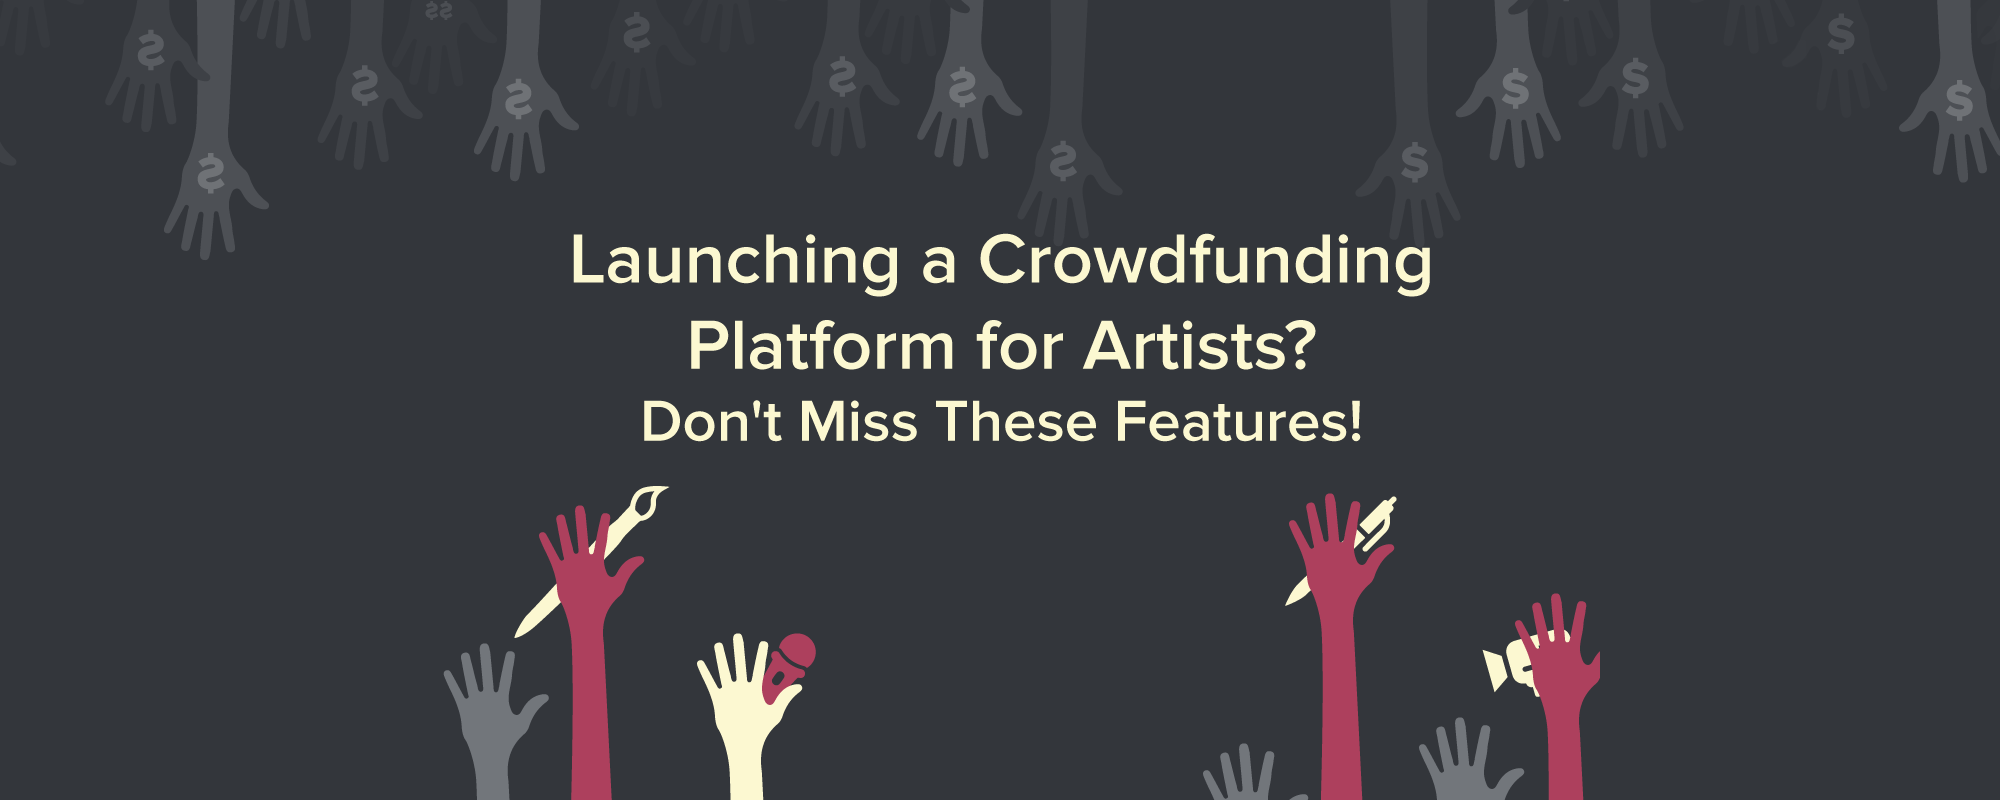 Everything Needed to Launch Crowdfunding Portal For Artists – Site Features, Business model & More